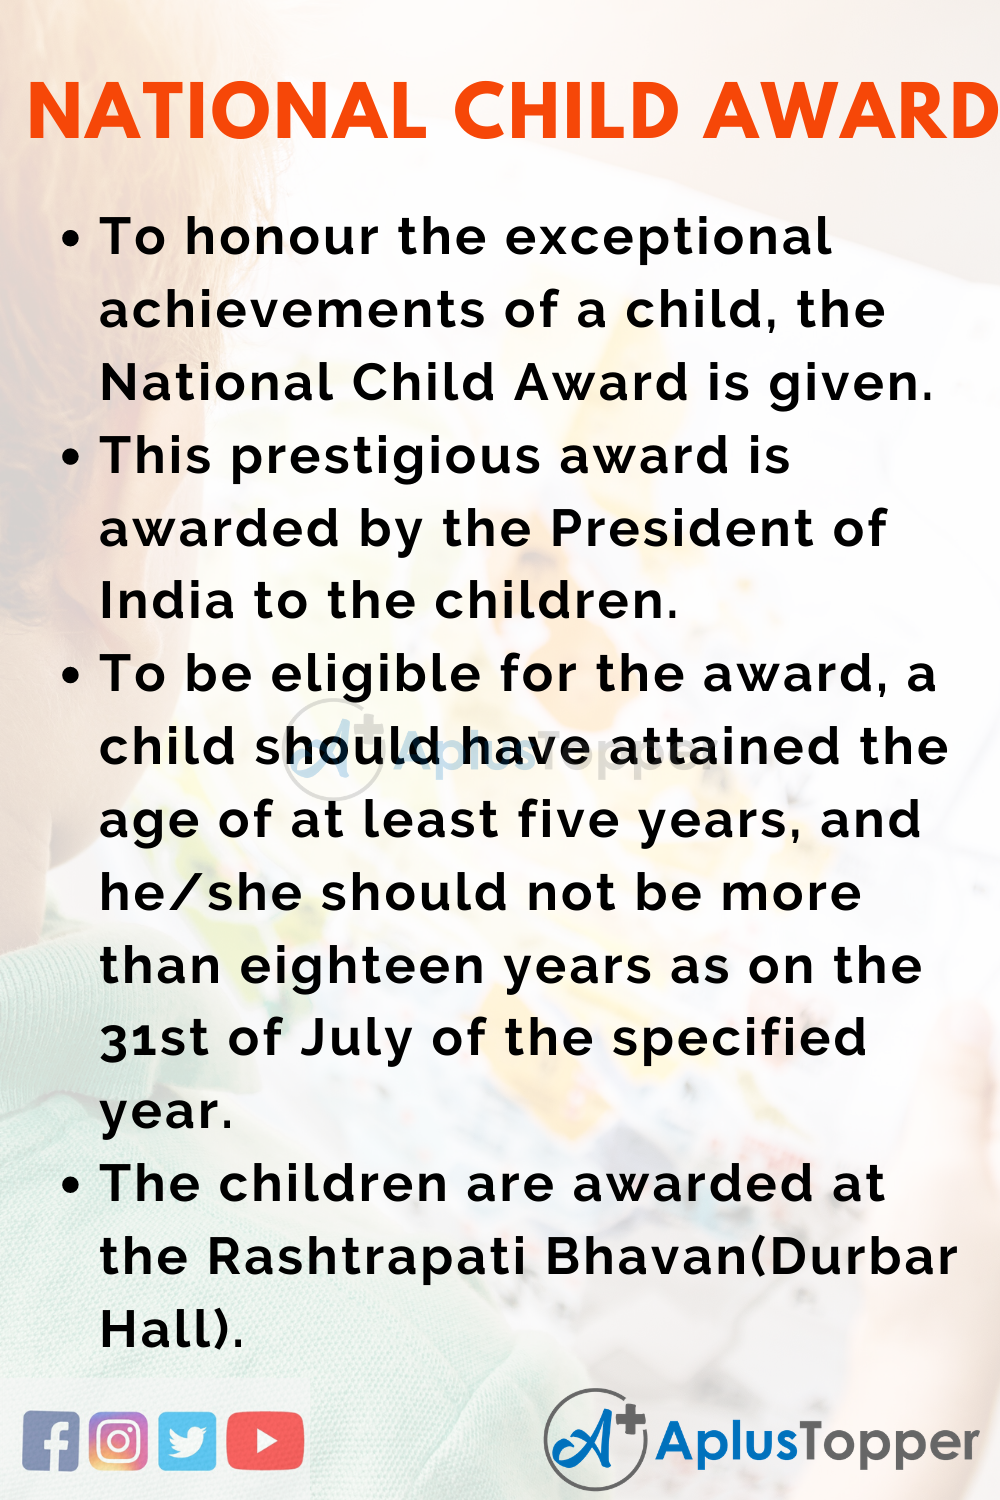 10 Lines about National Child Award for Exceptional Achievements